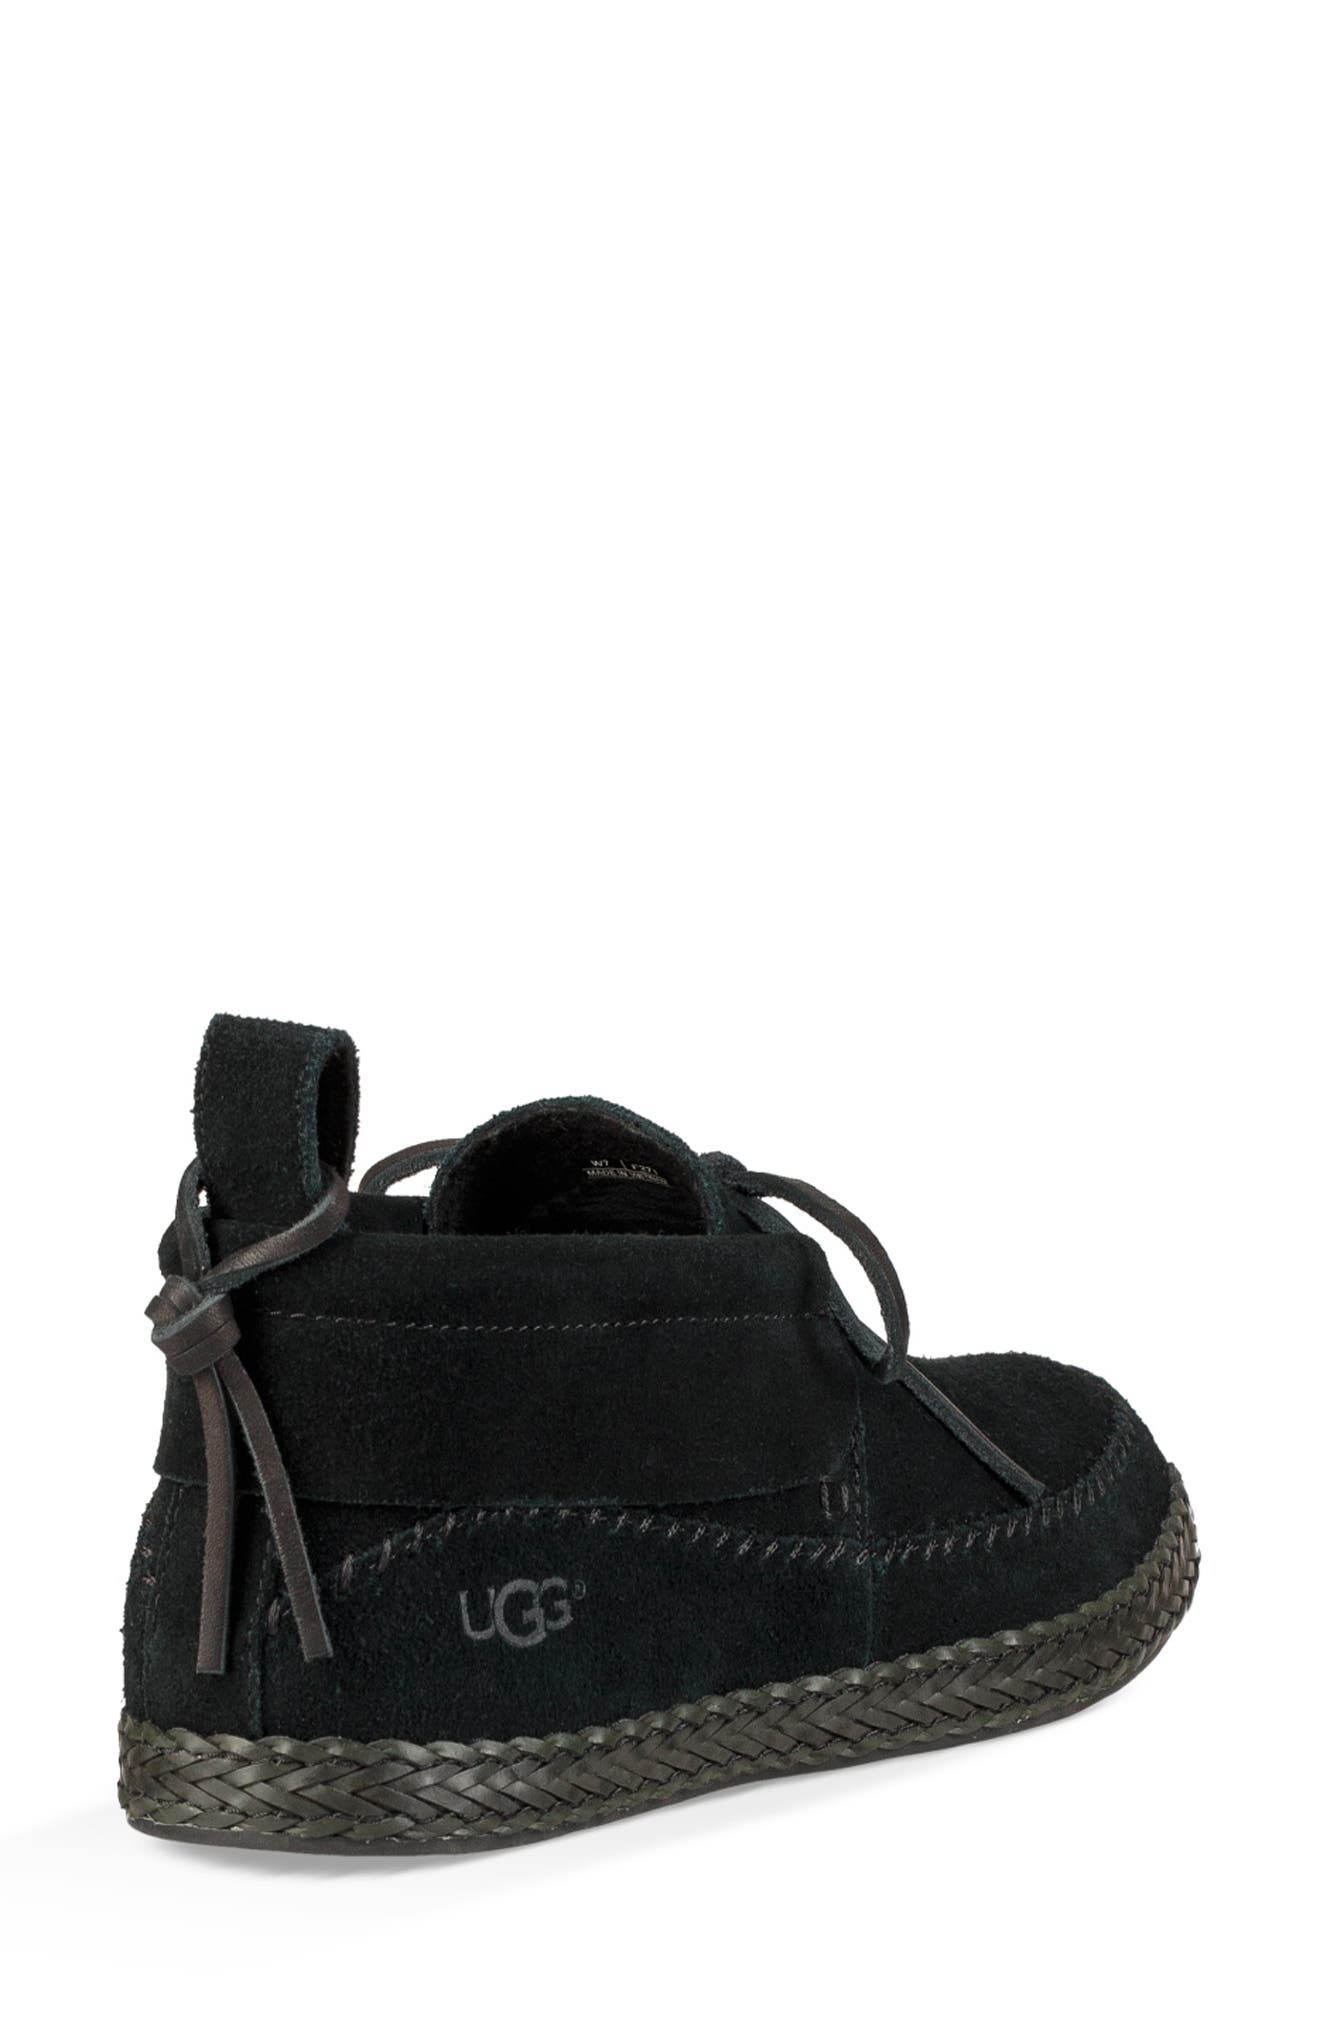 Woodlyn Moc Toe Bootie,                             Alternate thumbnail 2, color,                             BLACK LEATHER